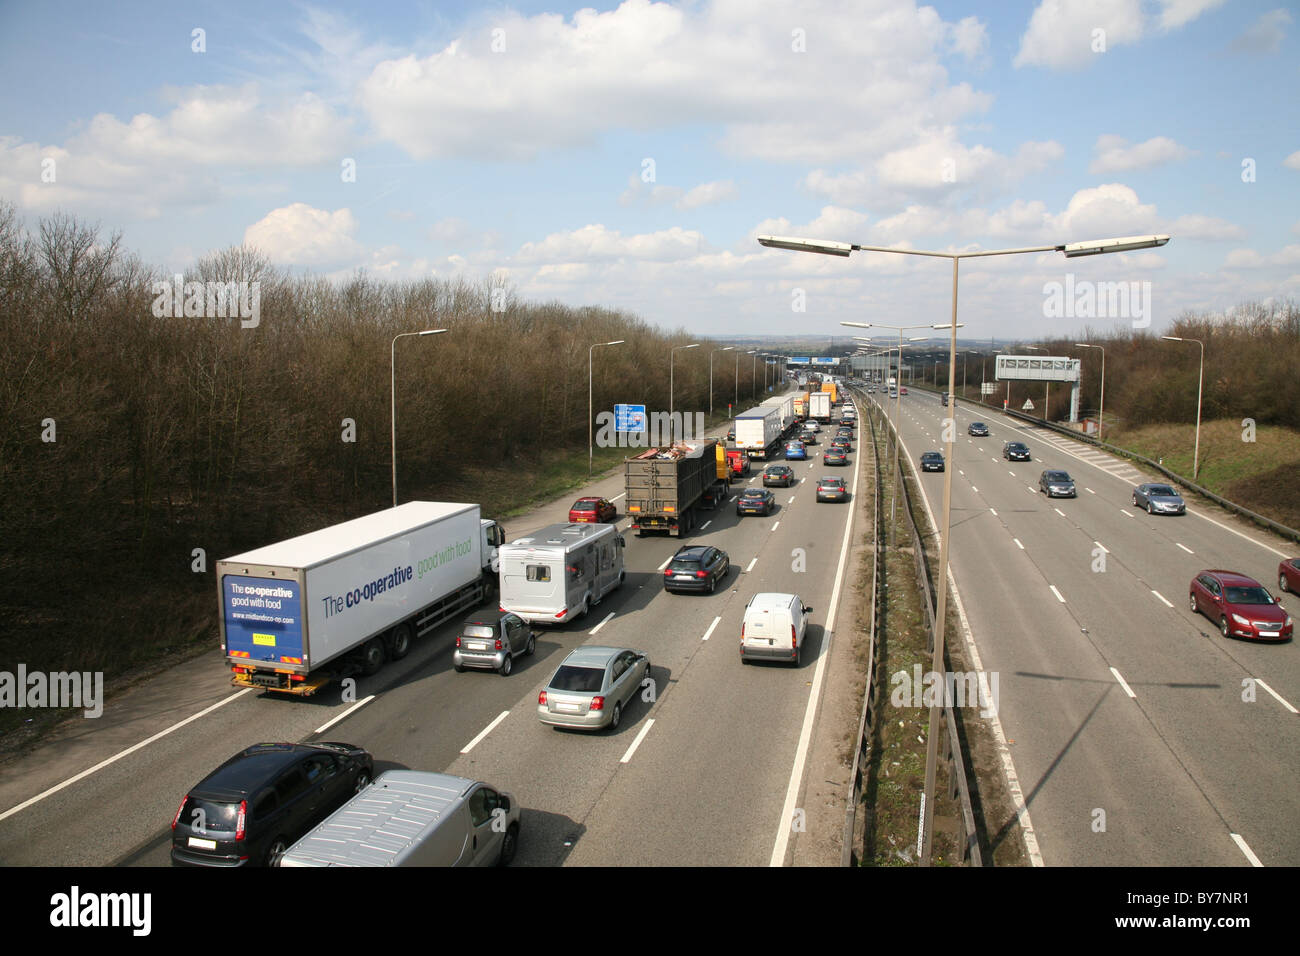 motorway congestion on the m1 junction 24 - Stock Image